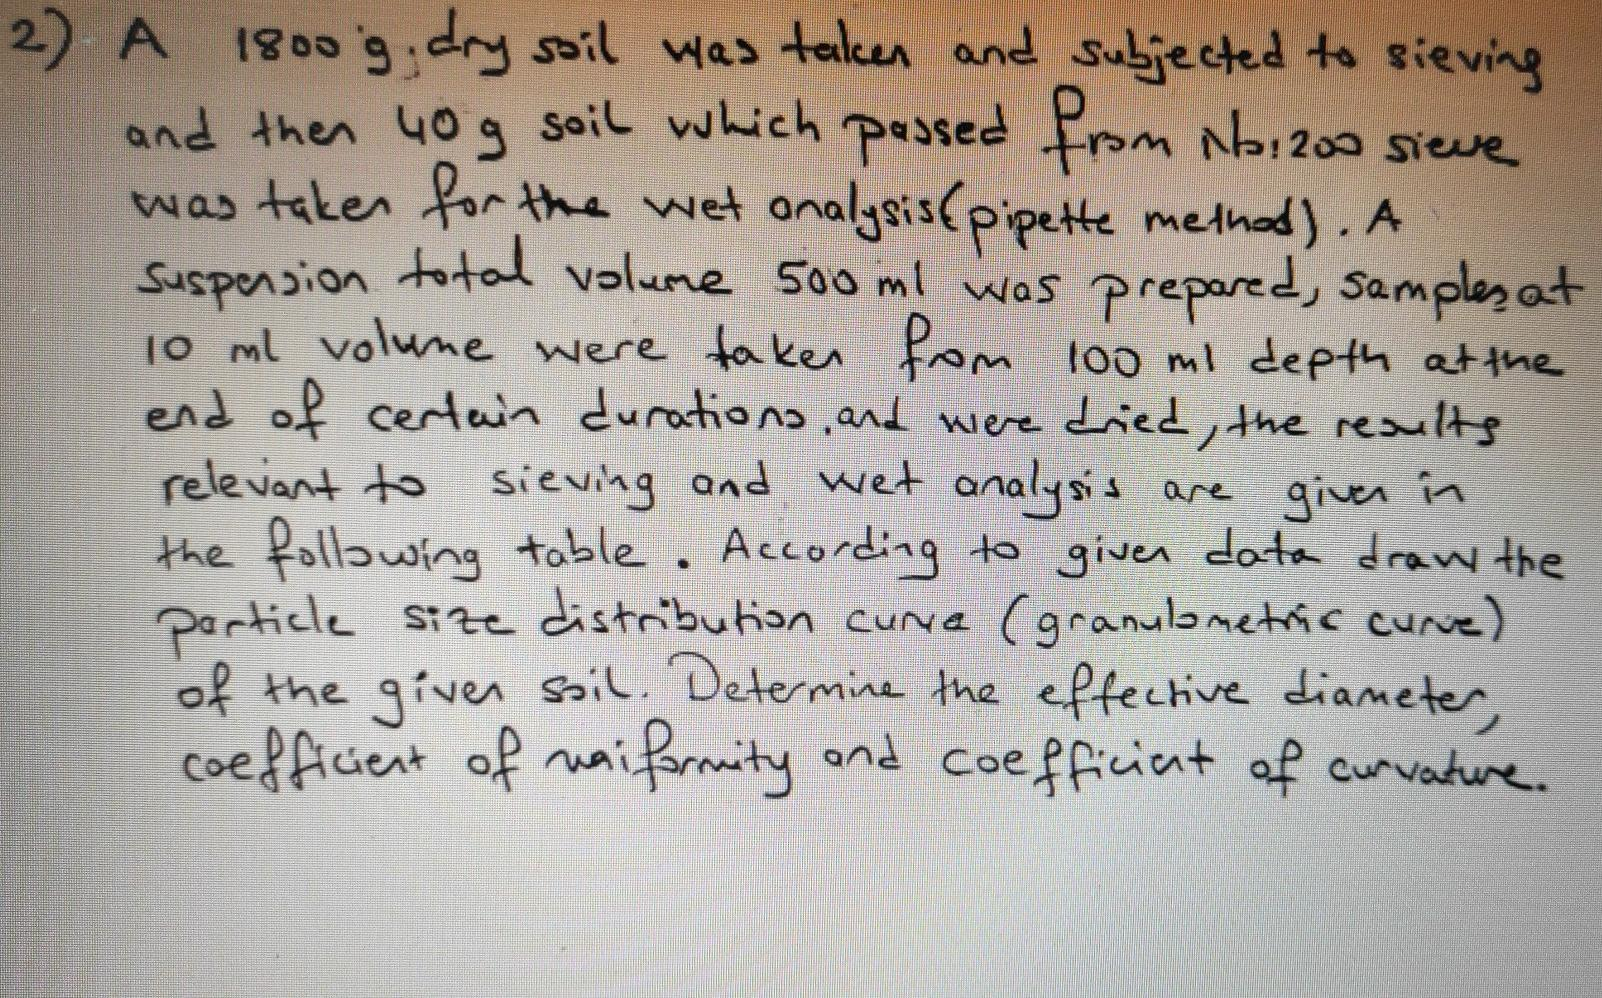 2) A 1800 g, dry soil was taken and subjected to sieving and then 40 g soil which passed from No,200 sieve was taken for the